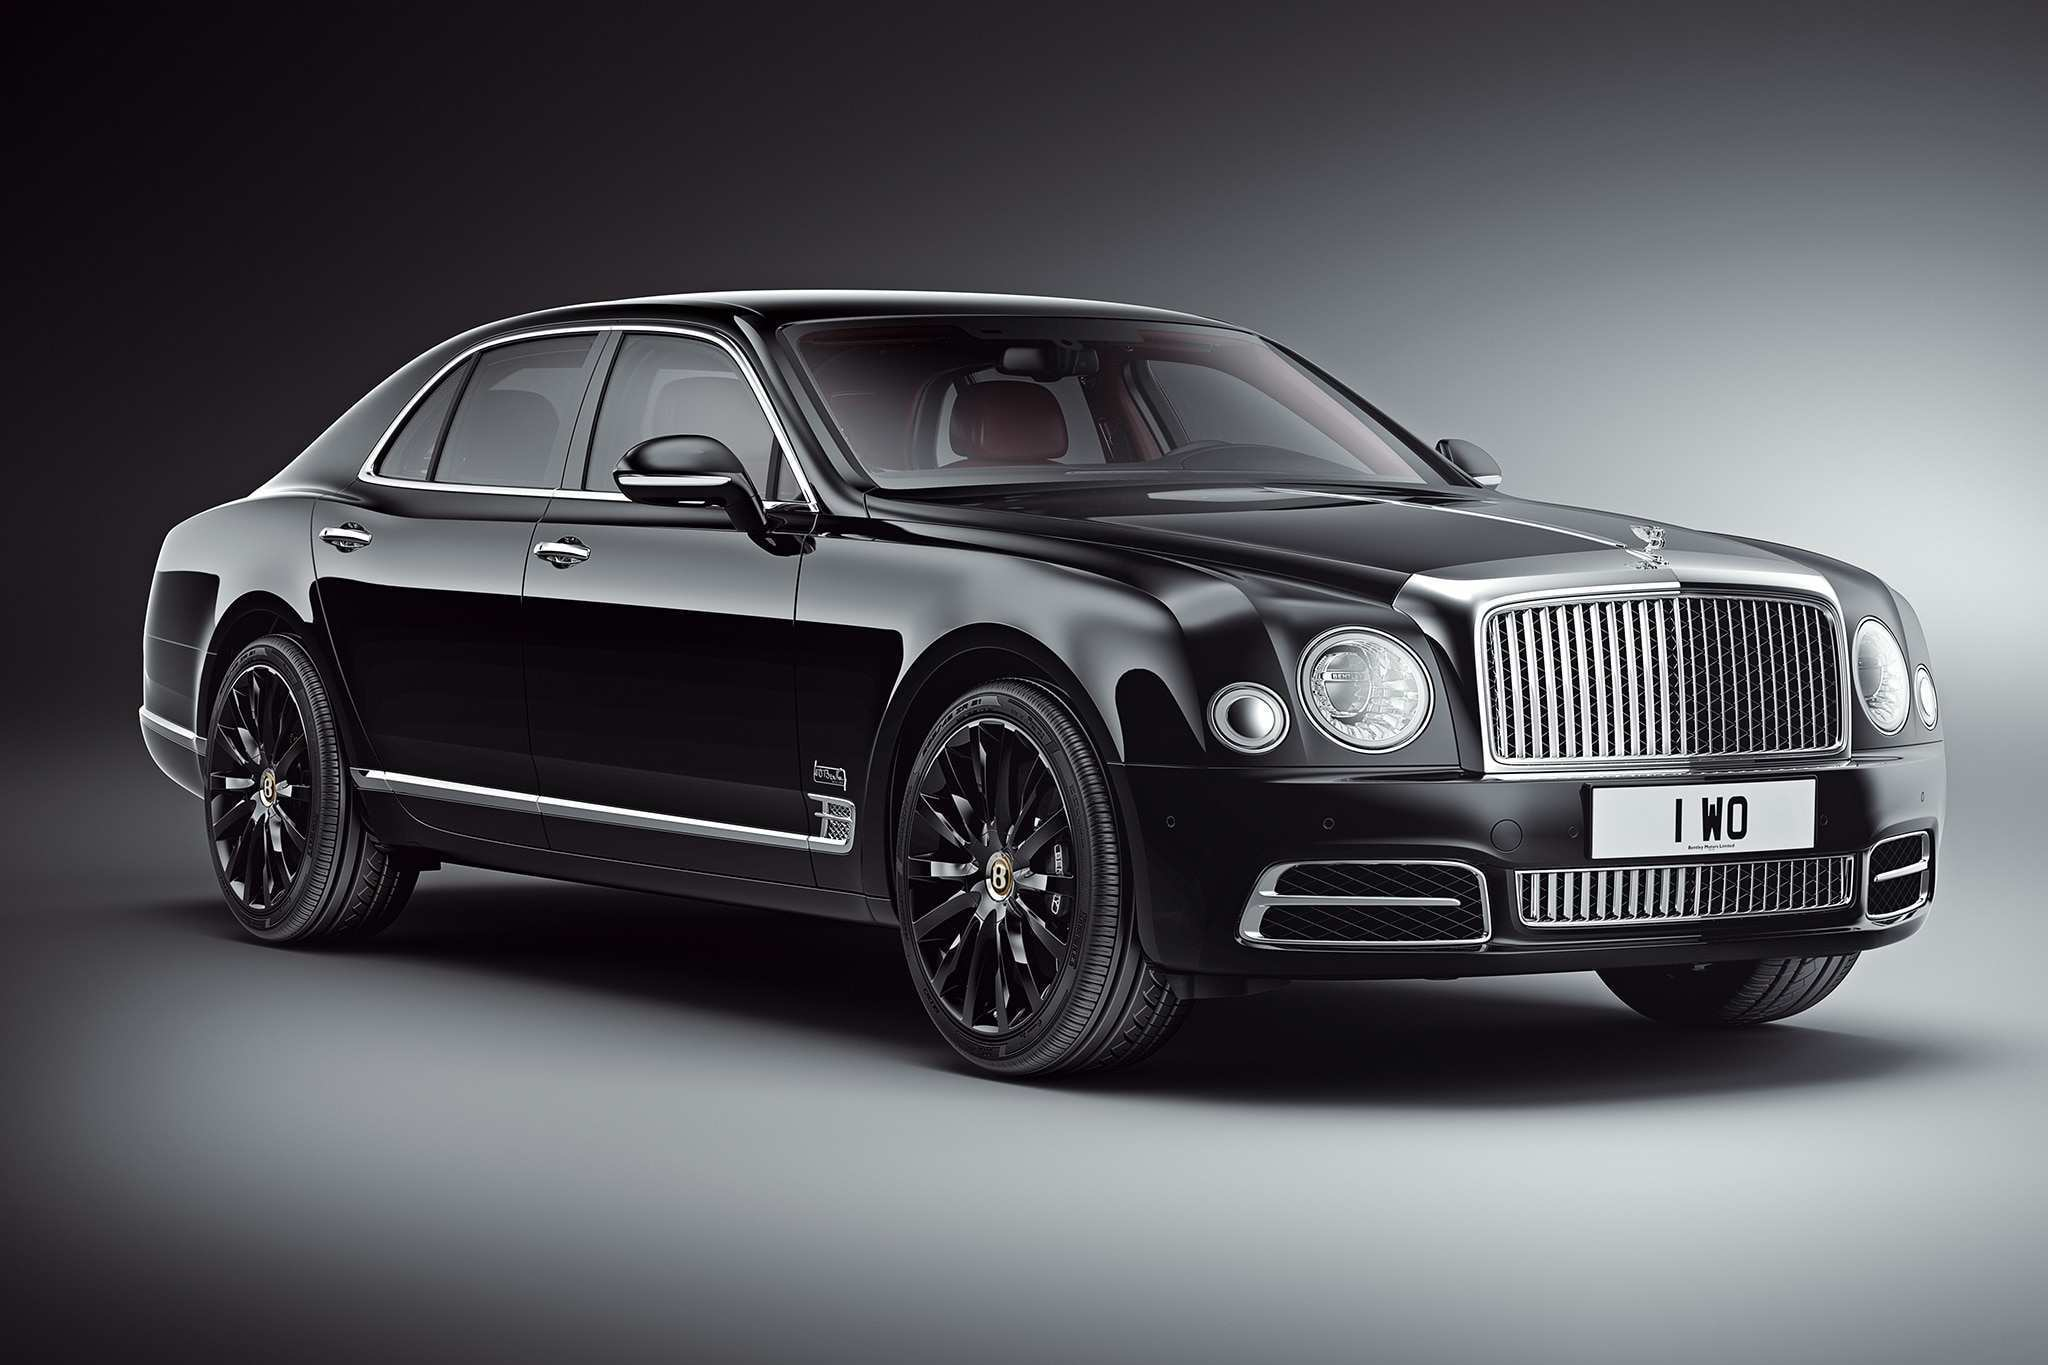 74 All New 2019 Bentley Mulsanne For Sale Exterior and Interior by 2019 Bentley Mulsanne For Sale